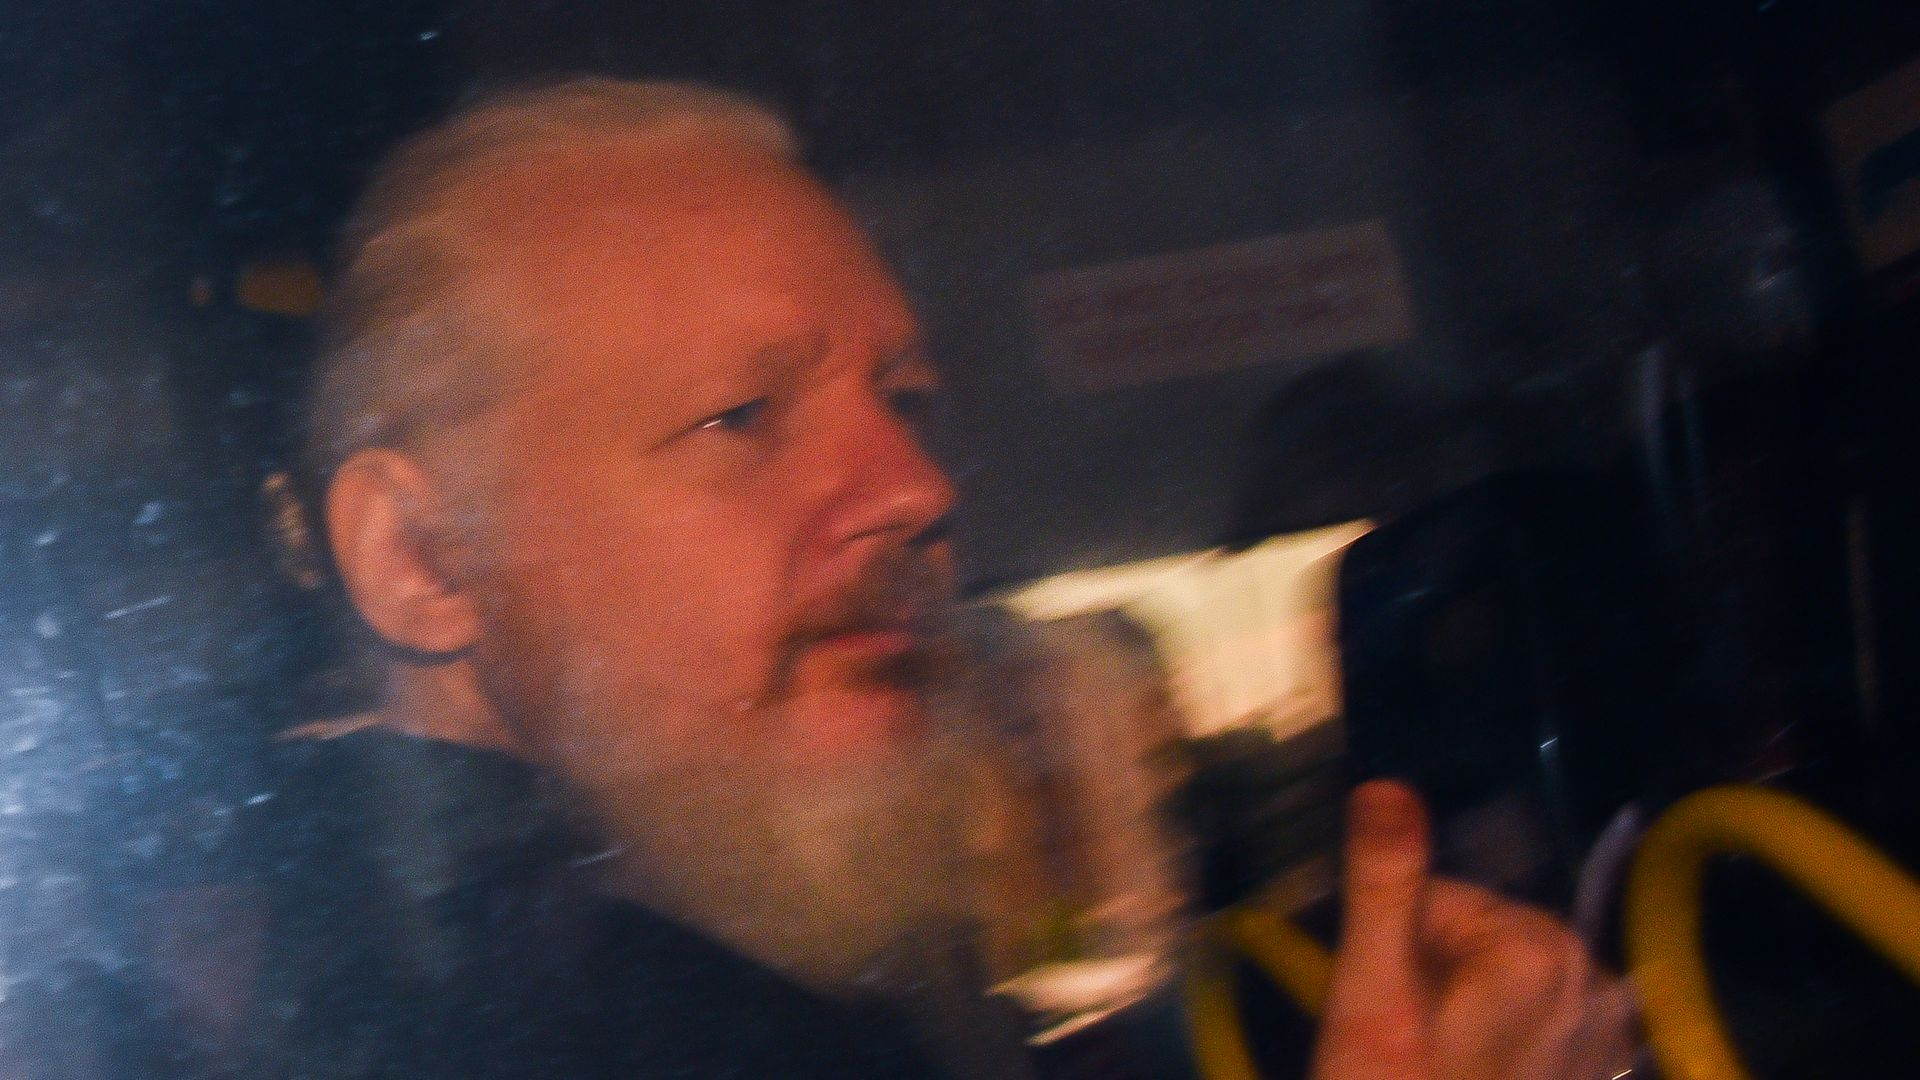 Julian Assange is expected to fight extradition to the U.S.